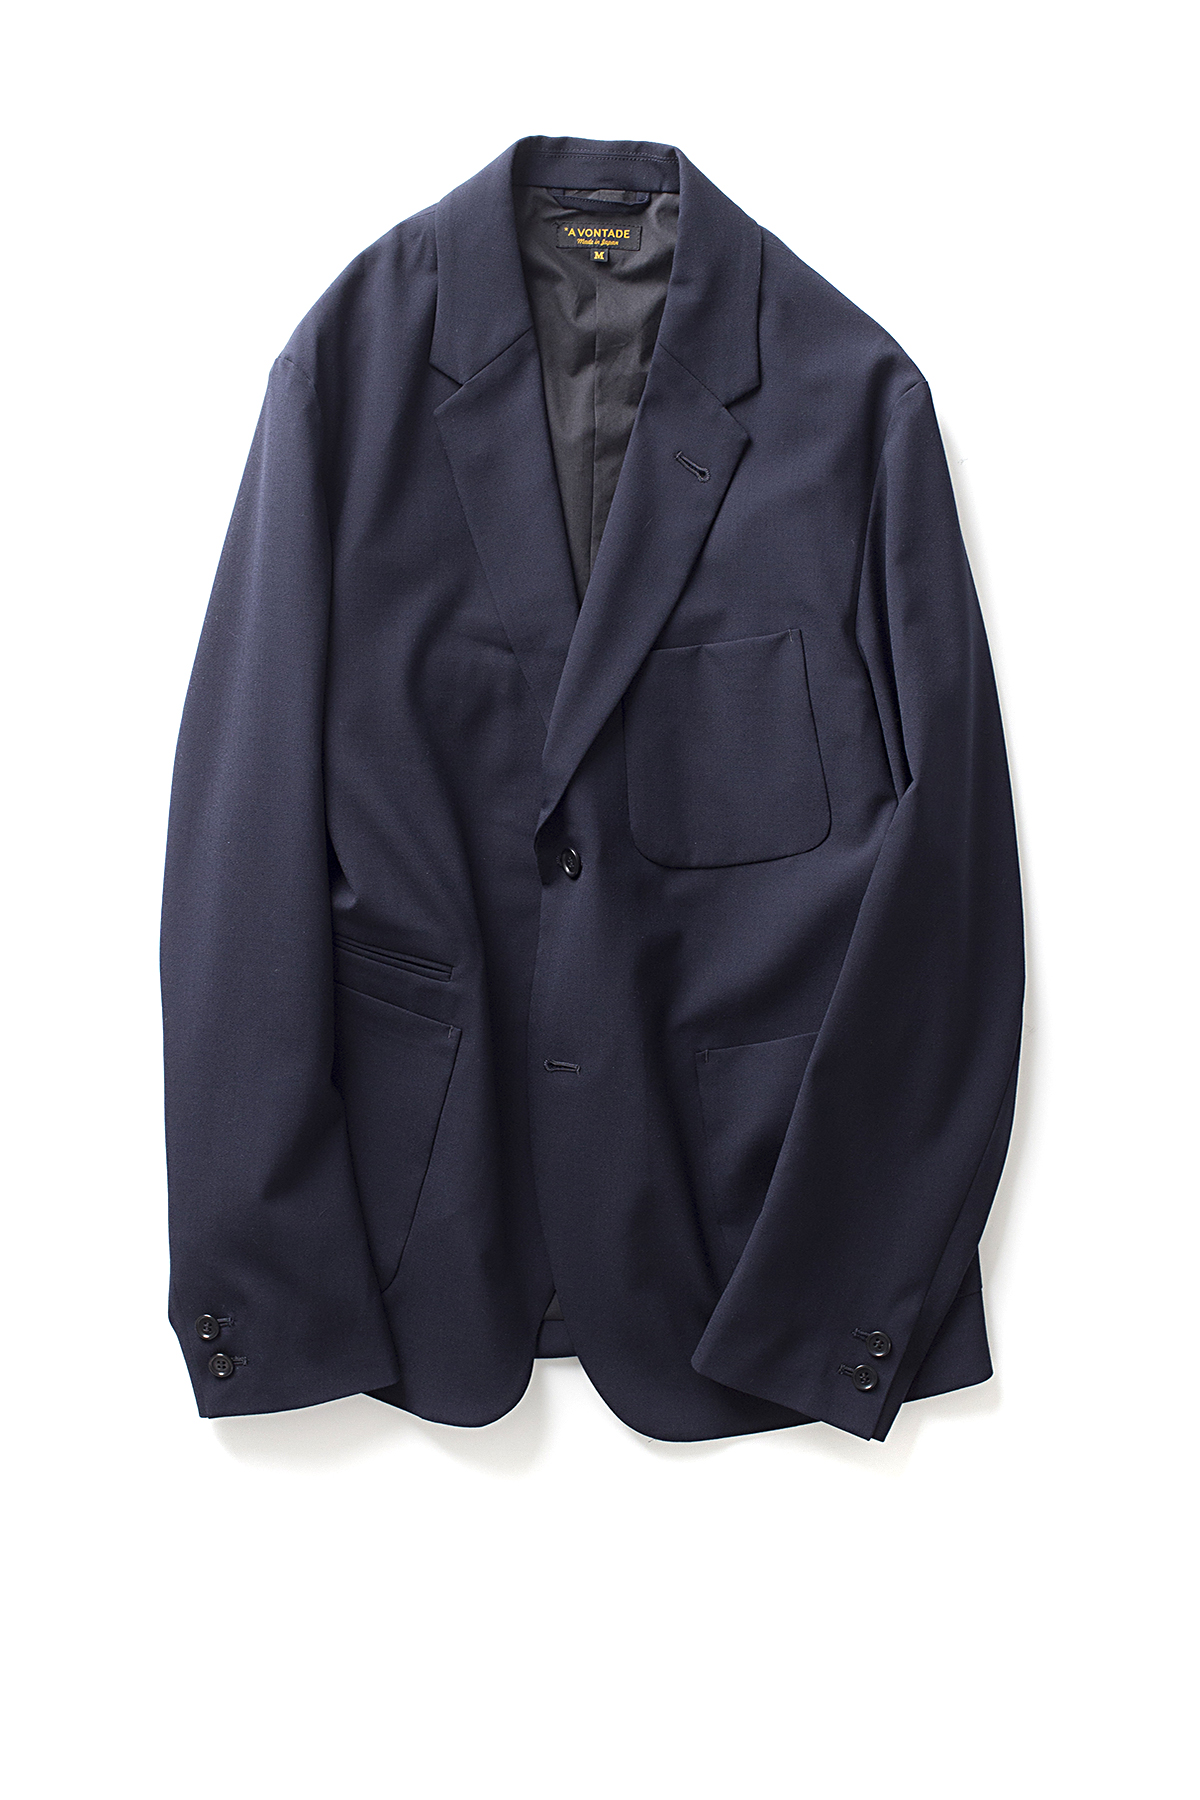 A vontade : Lounge Jacket (D.Navy)